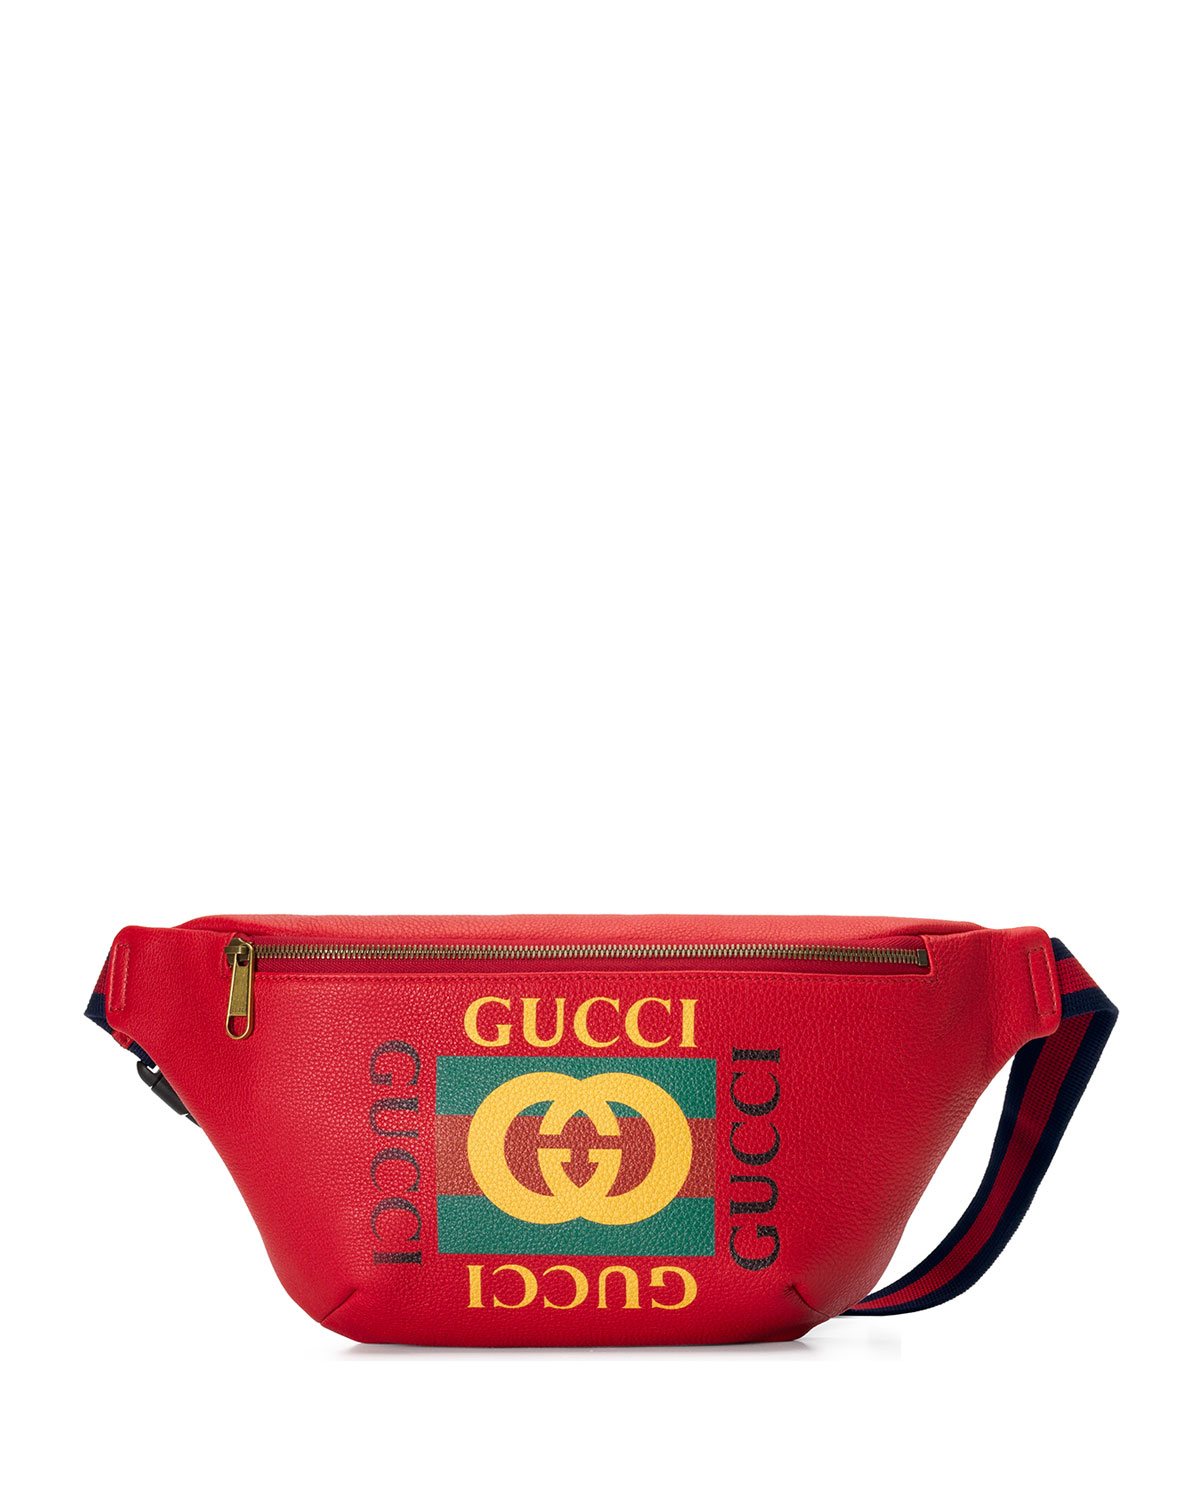 ba83189d42f Gucci Retro GG Logo Belt Bag Fanny Pack